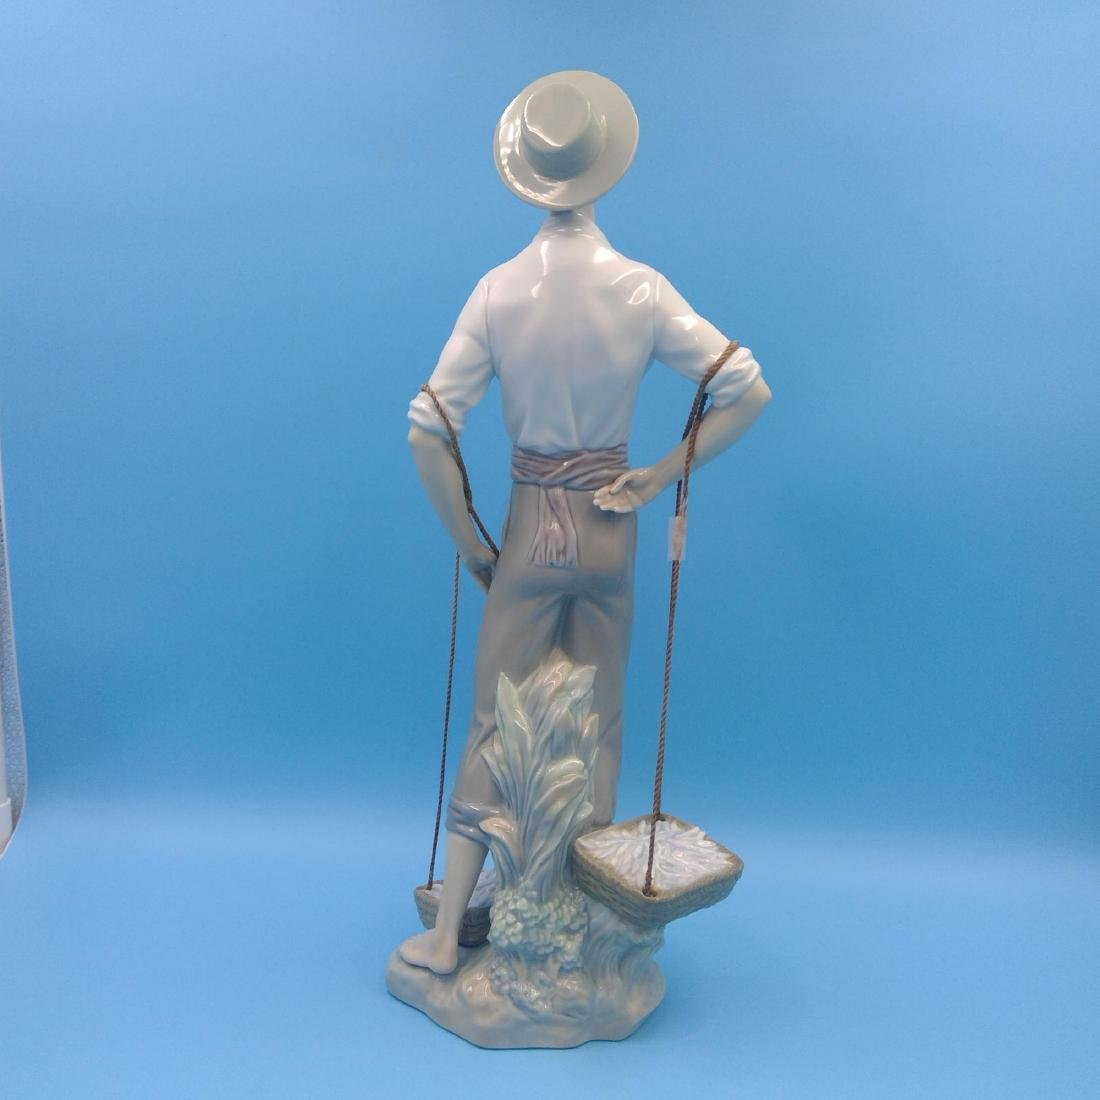 LLADRO LARGE FISHERMAN PORCELAIN FIGURINE - 3